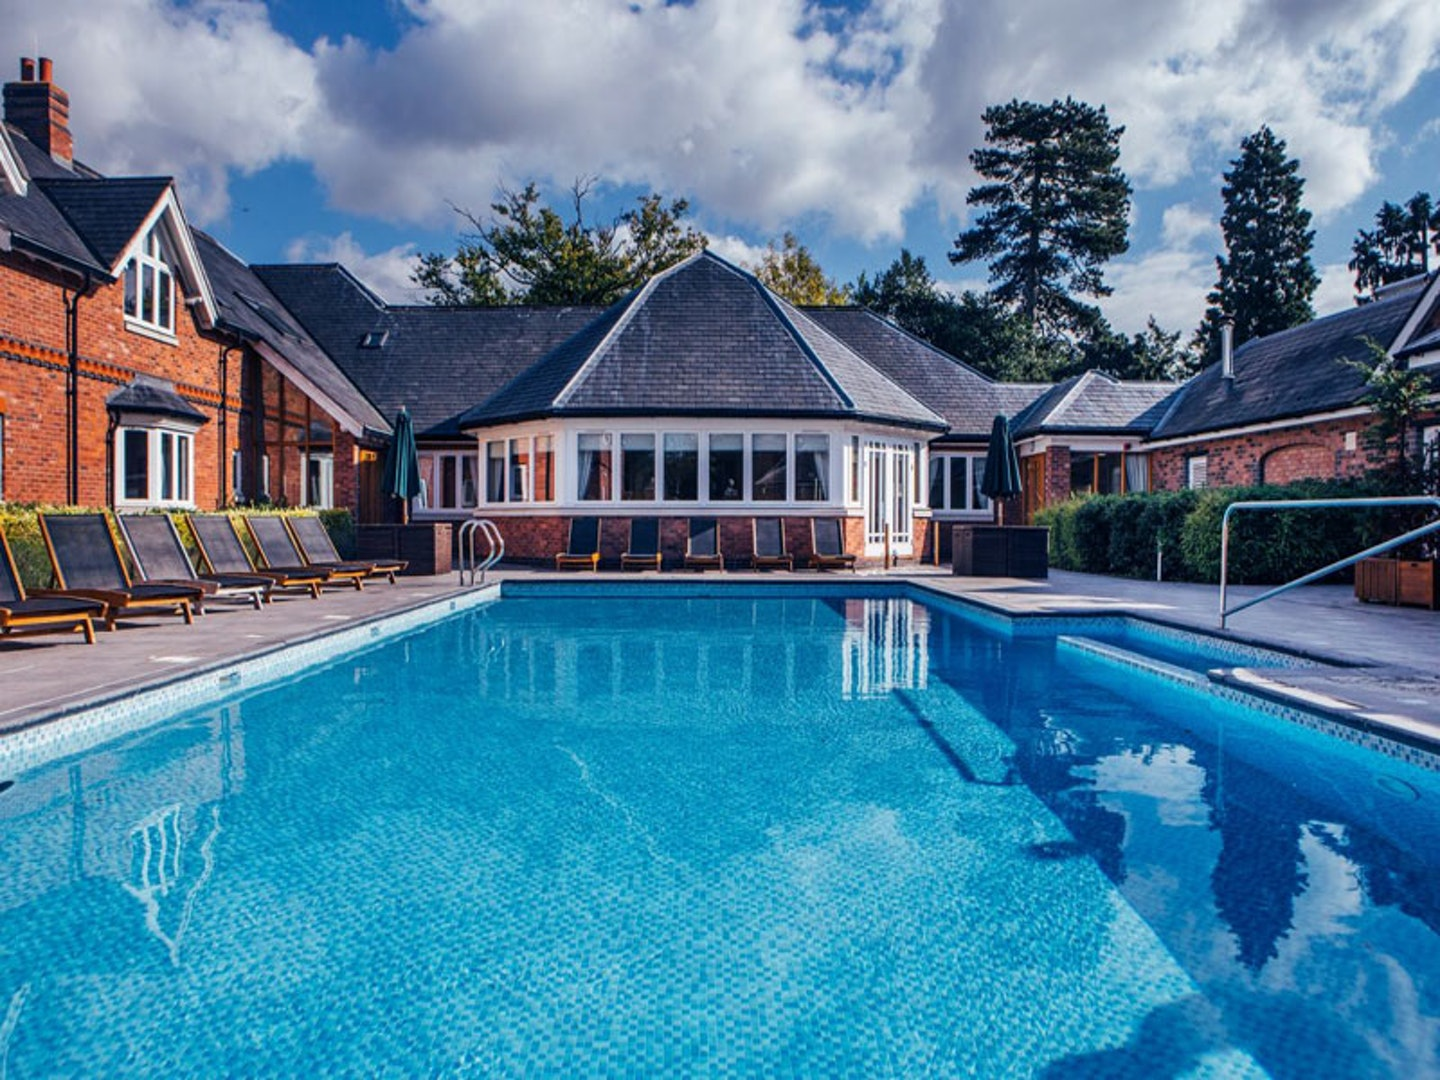 10 great UK spas with an outdoor pool or outdoor hot tub